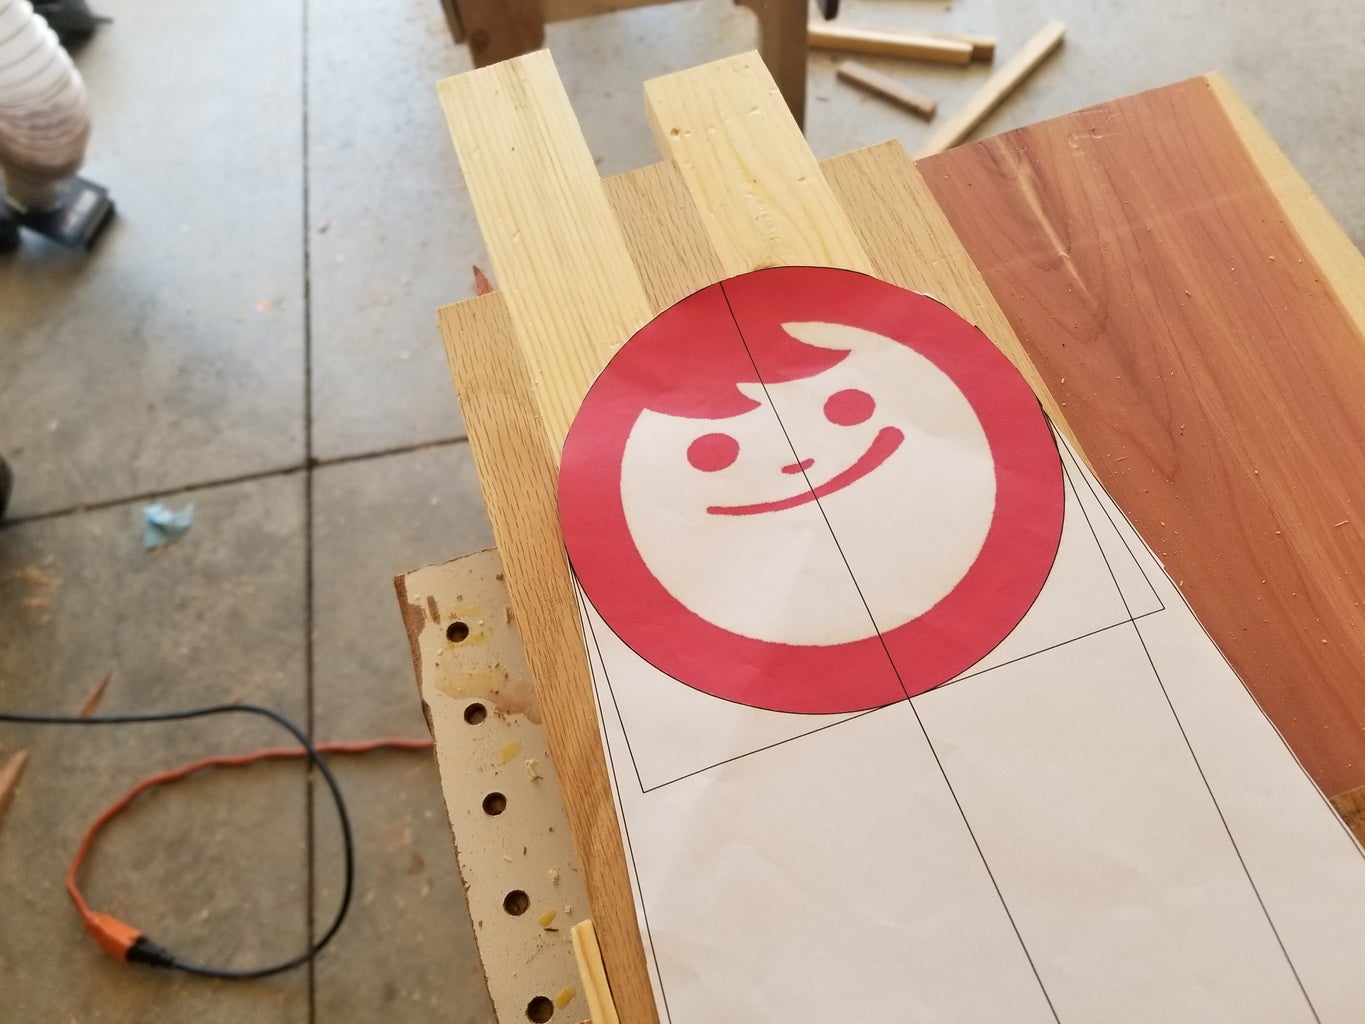 Print Out the Design and Find the Wood!